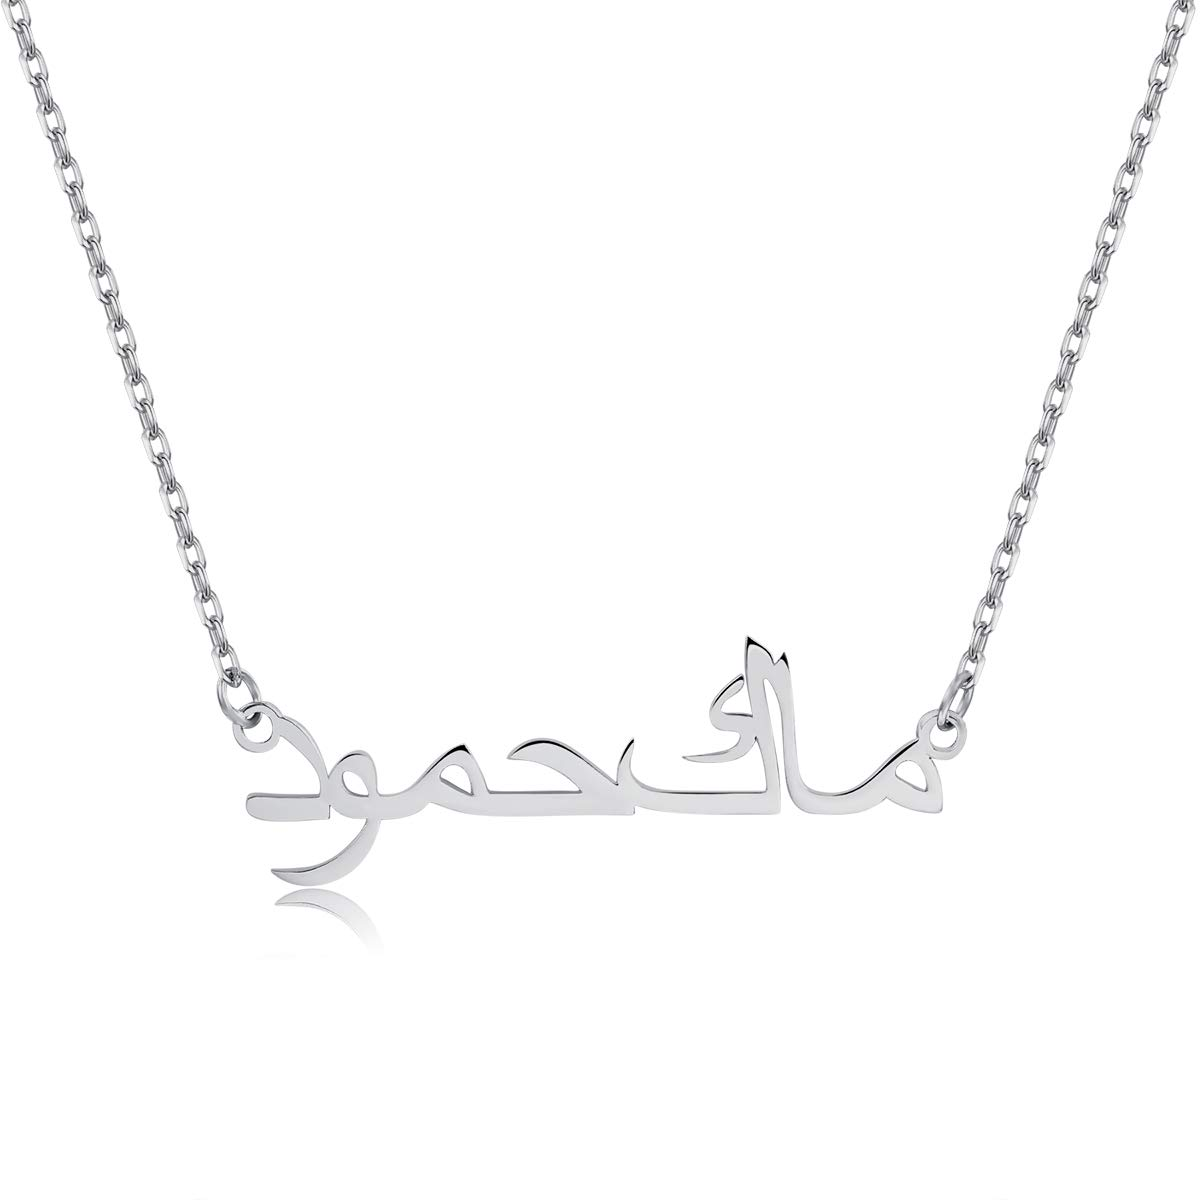 Dreamdecor Arabic Name Necklace Personalized, Sterling Silver Custom Name Necklace for Christmas DR-004-3